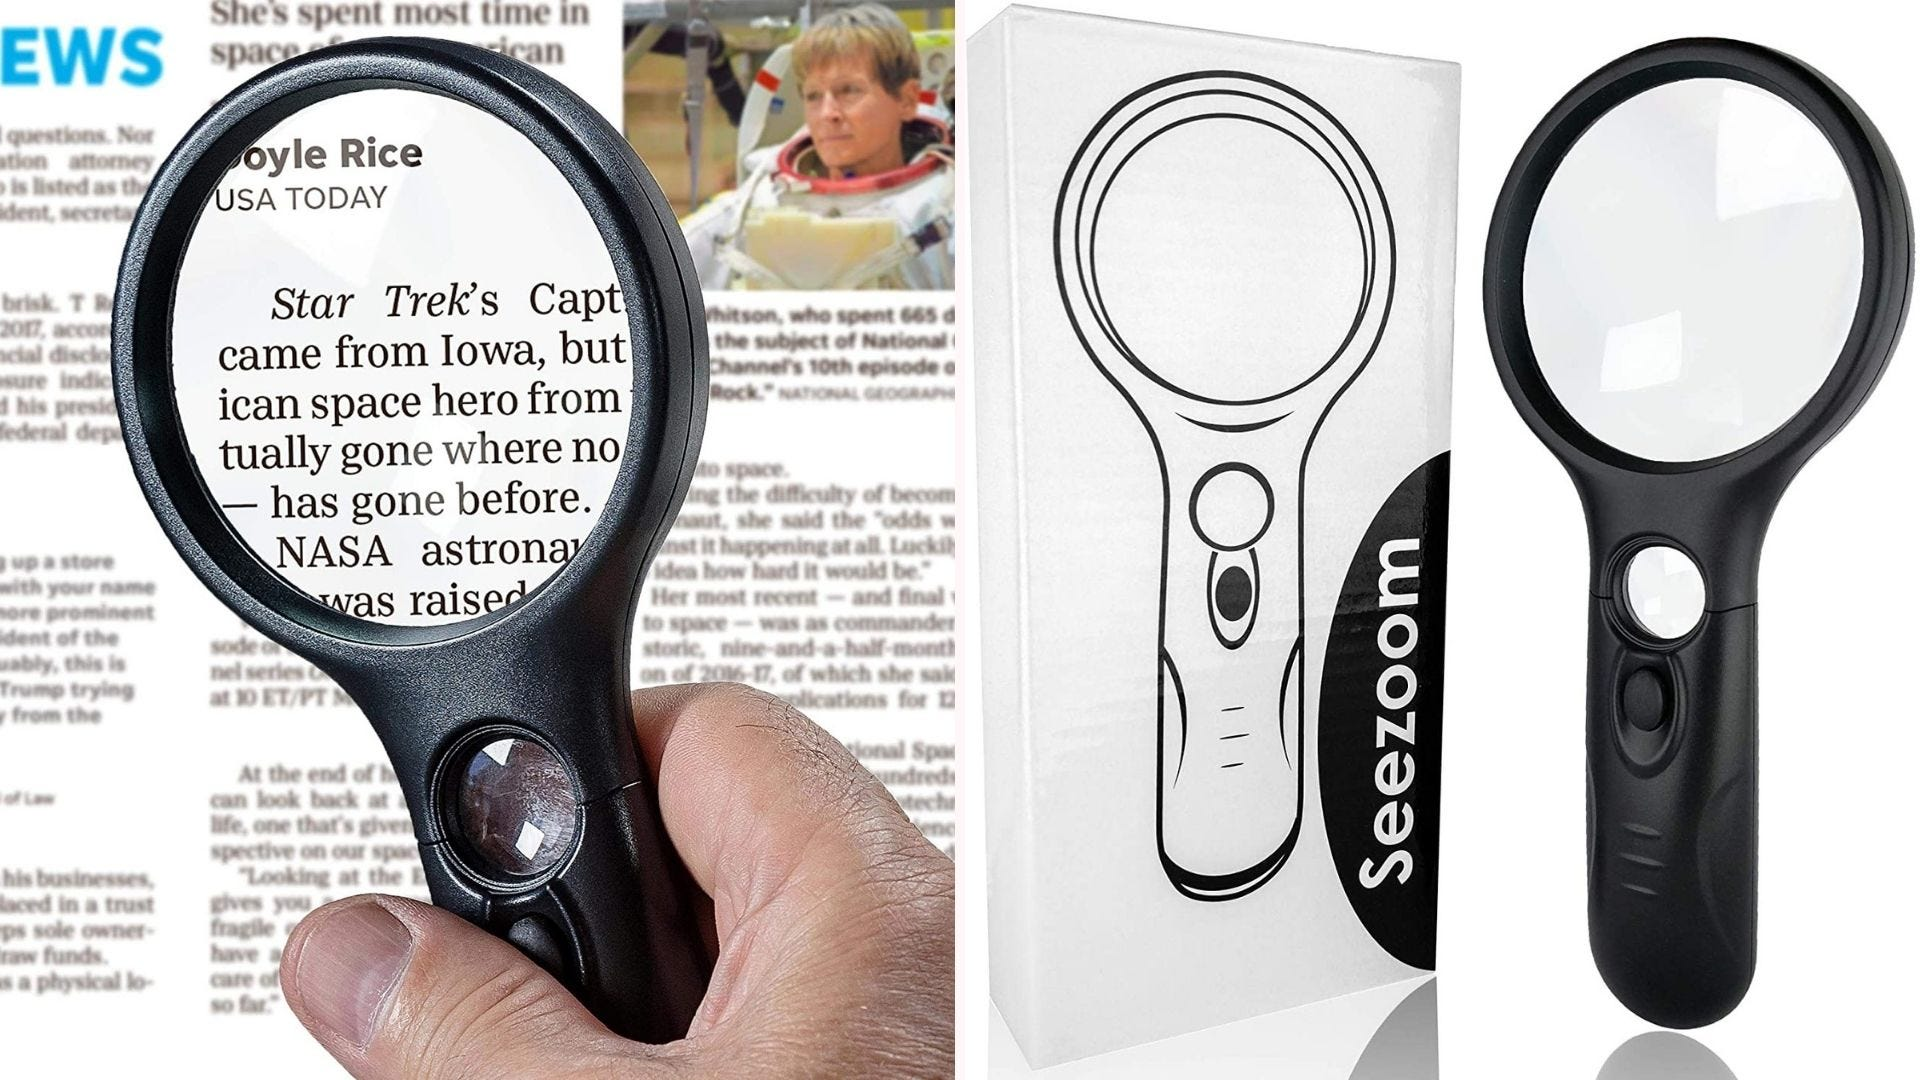 On the left, a circular magnifying glass with a large 3x lens, and a smaller 45x lens built into the handle of its frame, enlarges text. On the right, the eight-inch magnifying glass stands next to its cardboard packaging.